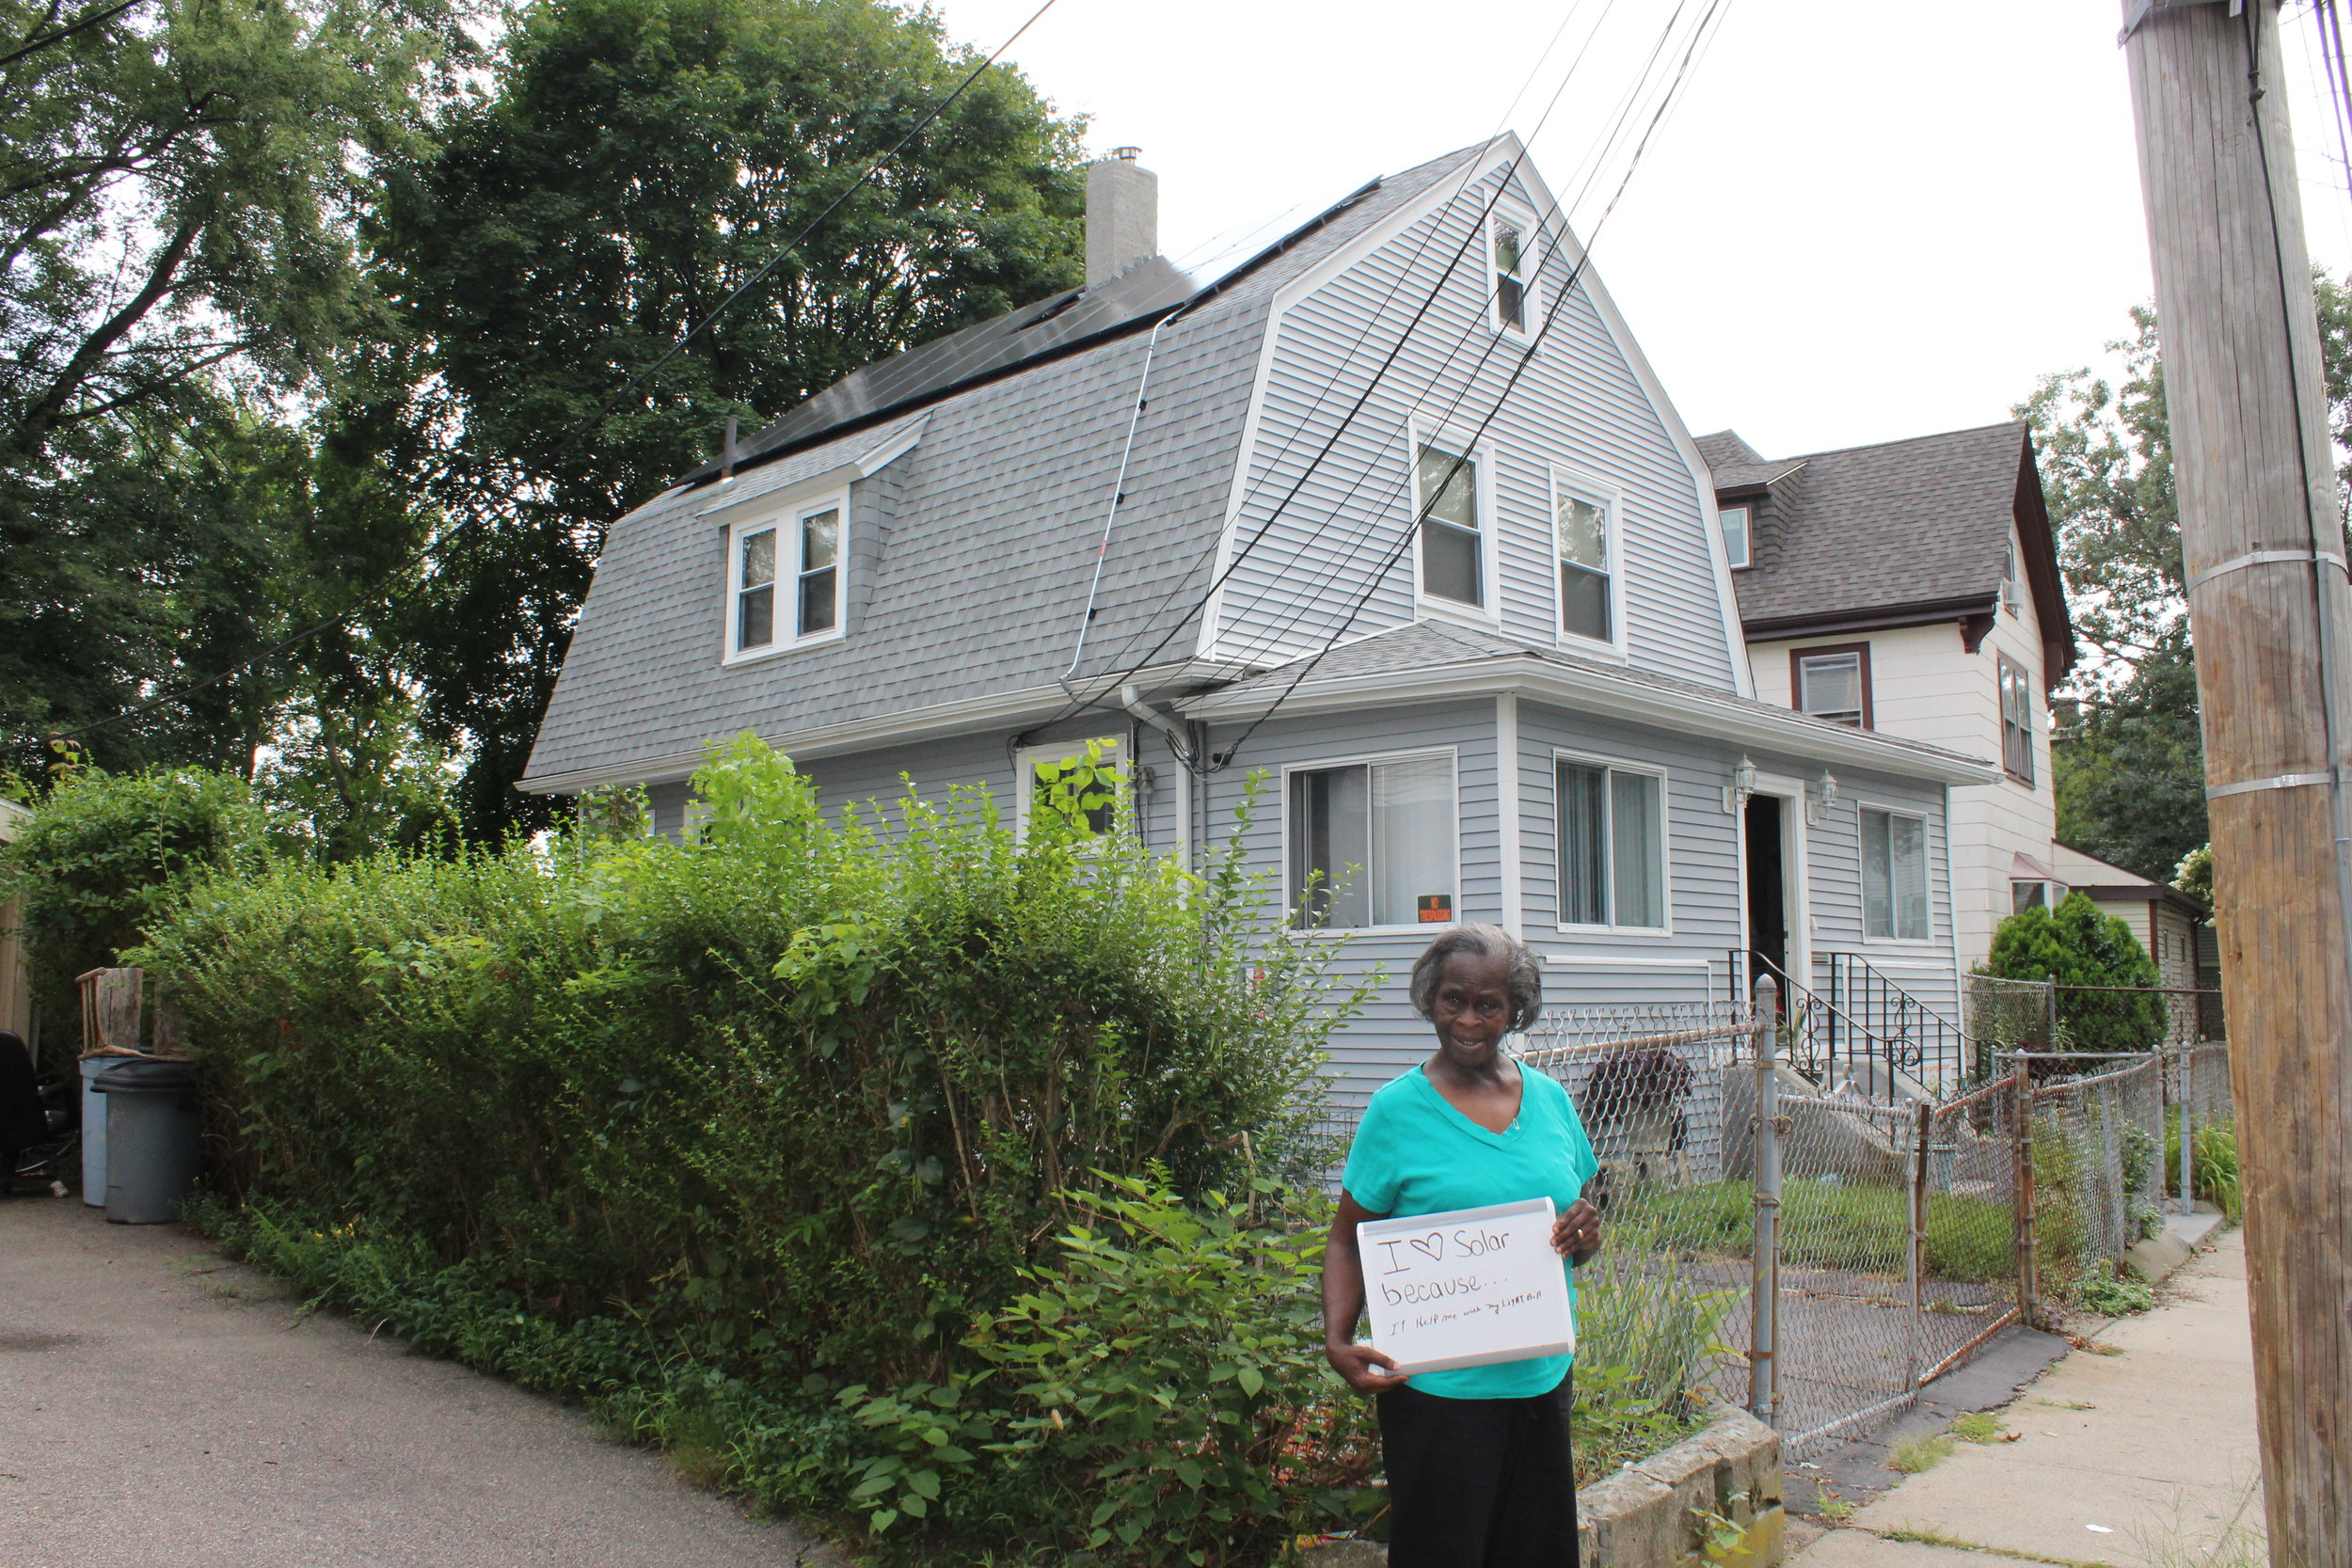 Mae-Bell Henry, pictured above, has lived in Dorchester, MA for the past 44 years and is one of the first participants in the Solar Access Program.